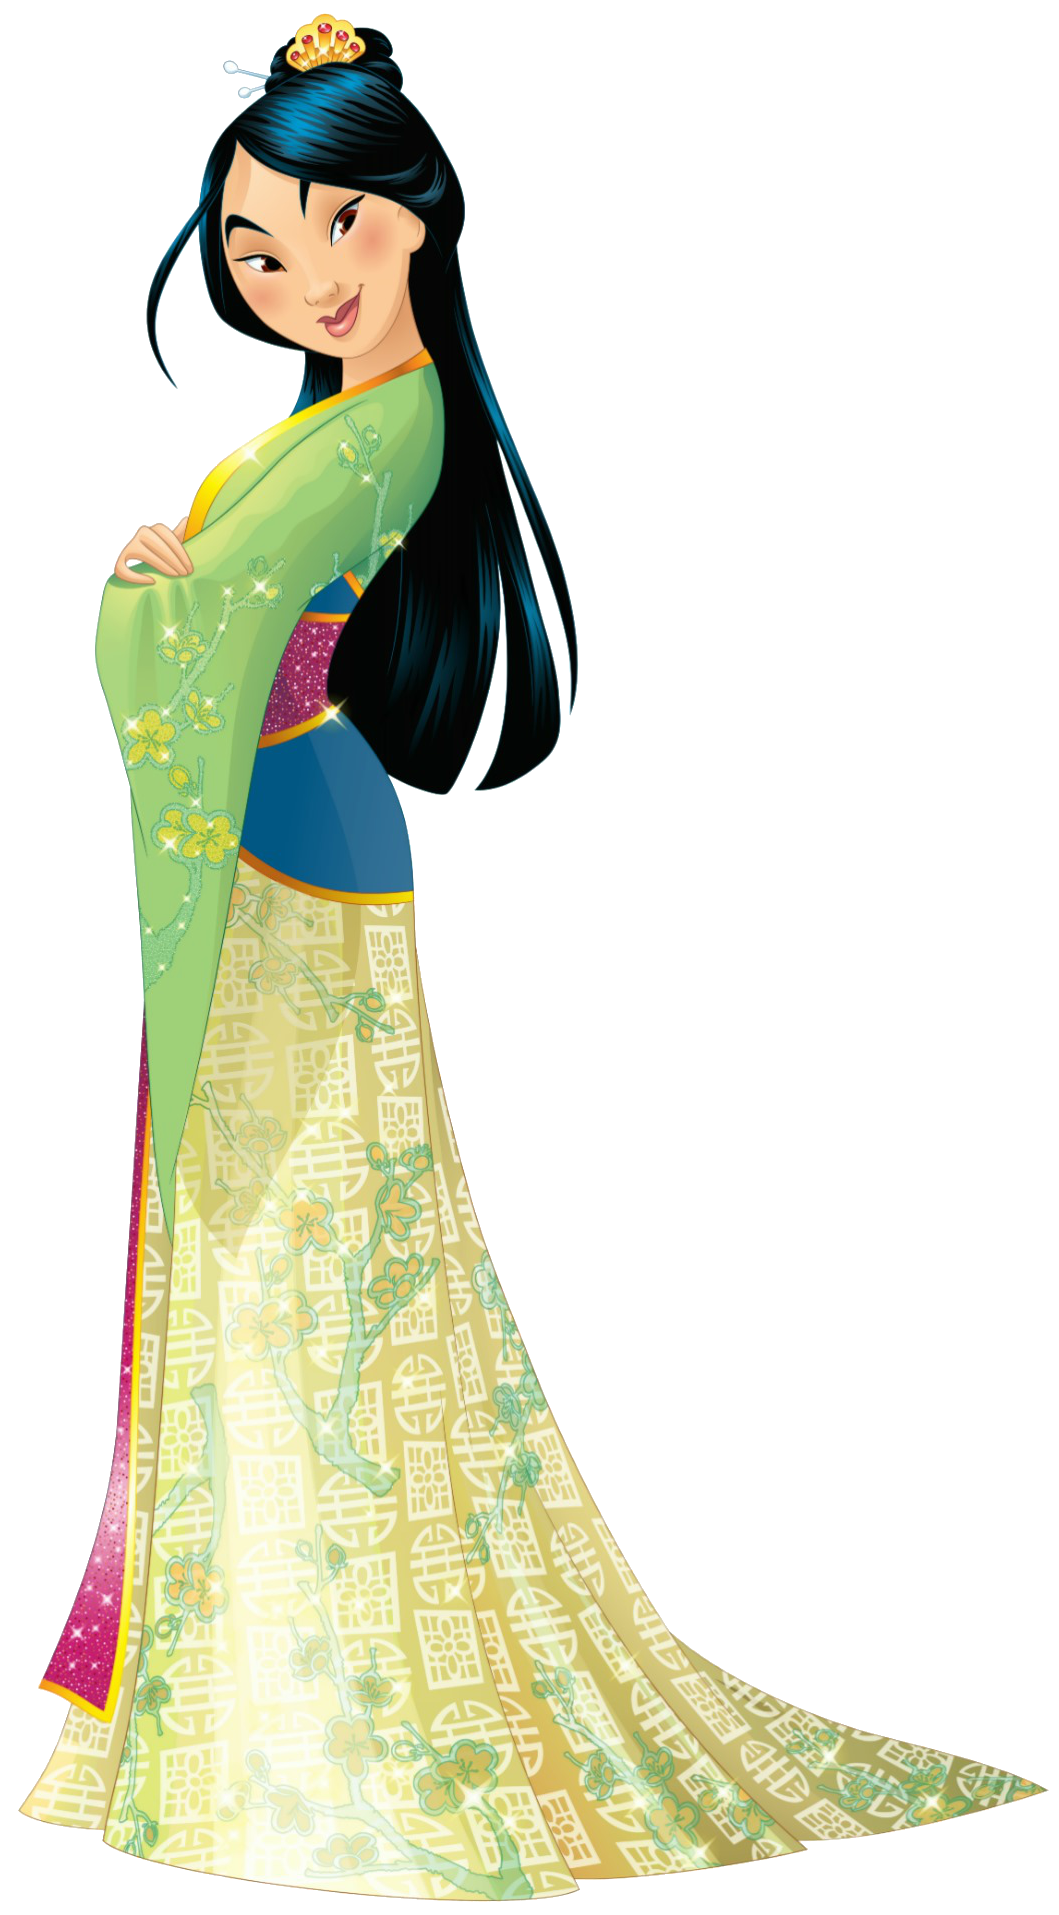 image mulan 16 png disney wiki fandom powered by wikia duck billed platypus clipart platypus face clipart